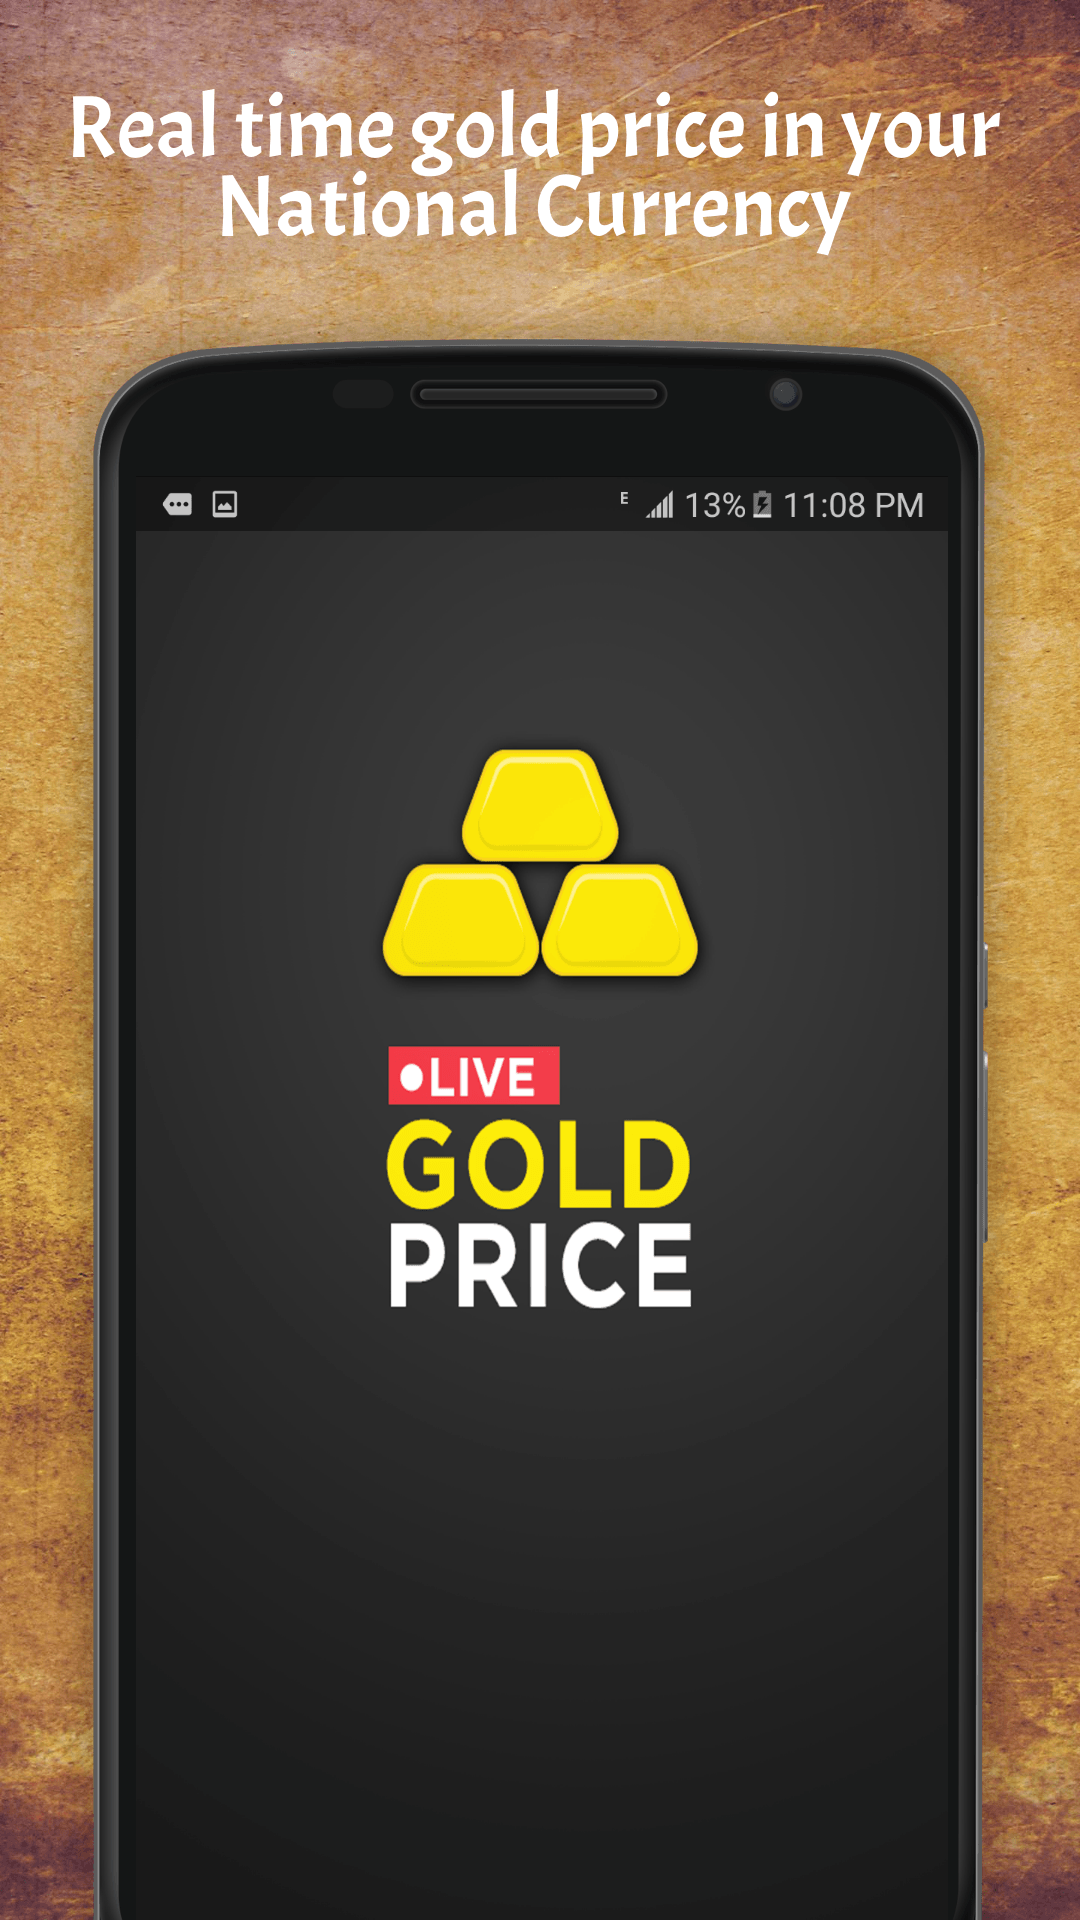 Some Customer Reviews Of Gold Price M Abudaqa Great Rate Easy To Use Lication Also It Can Works Offline